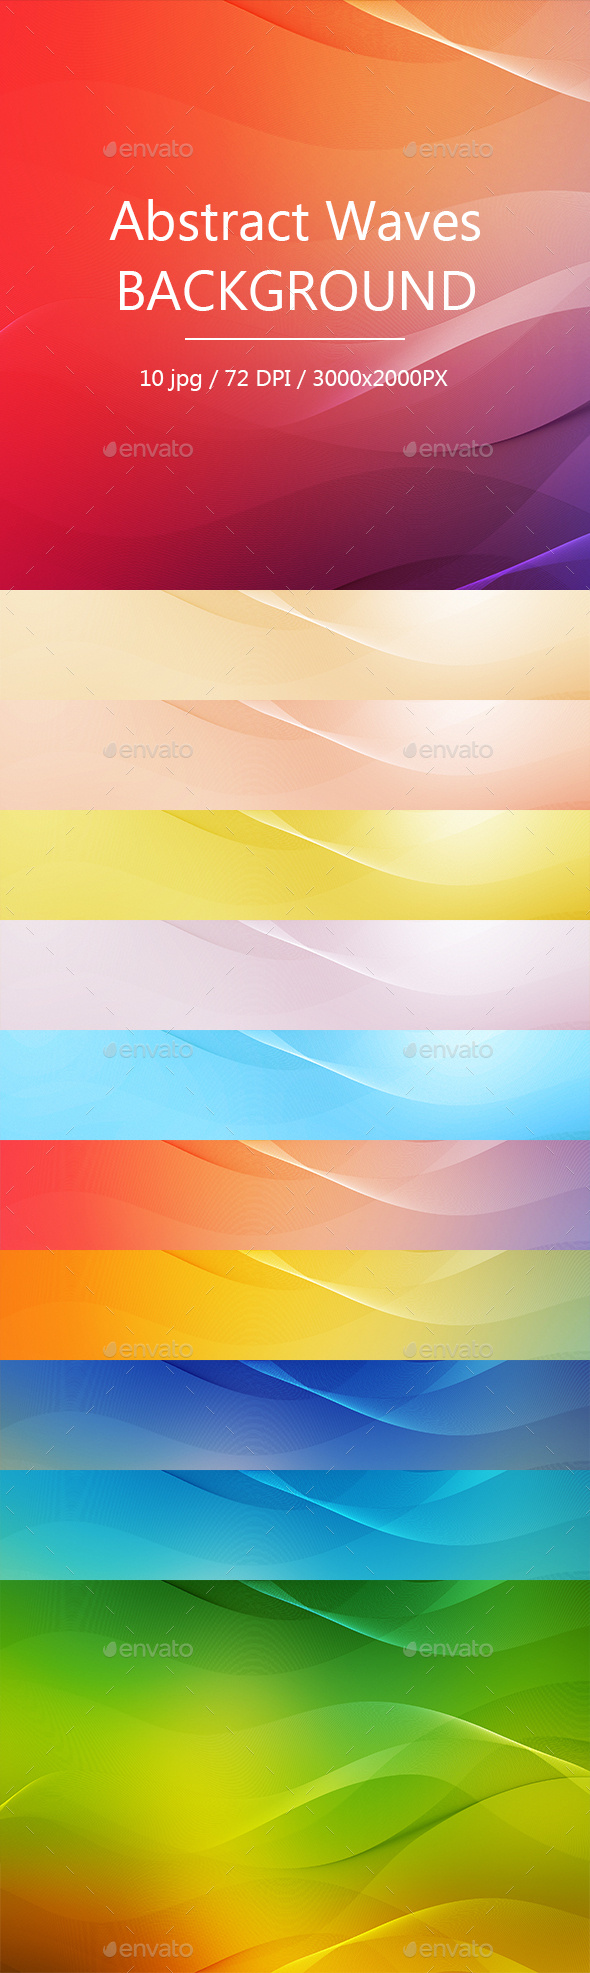 Abstract Waves Background - Abstract Backgrounds